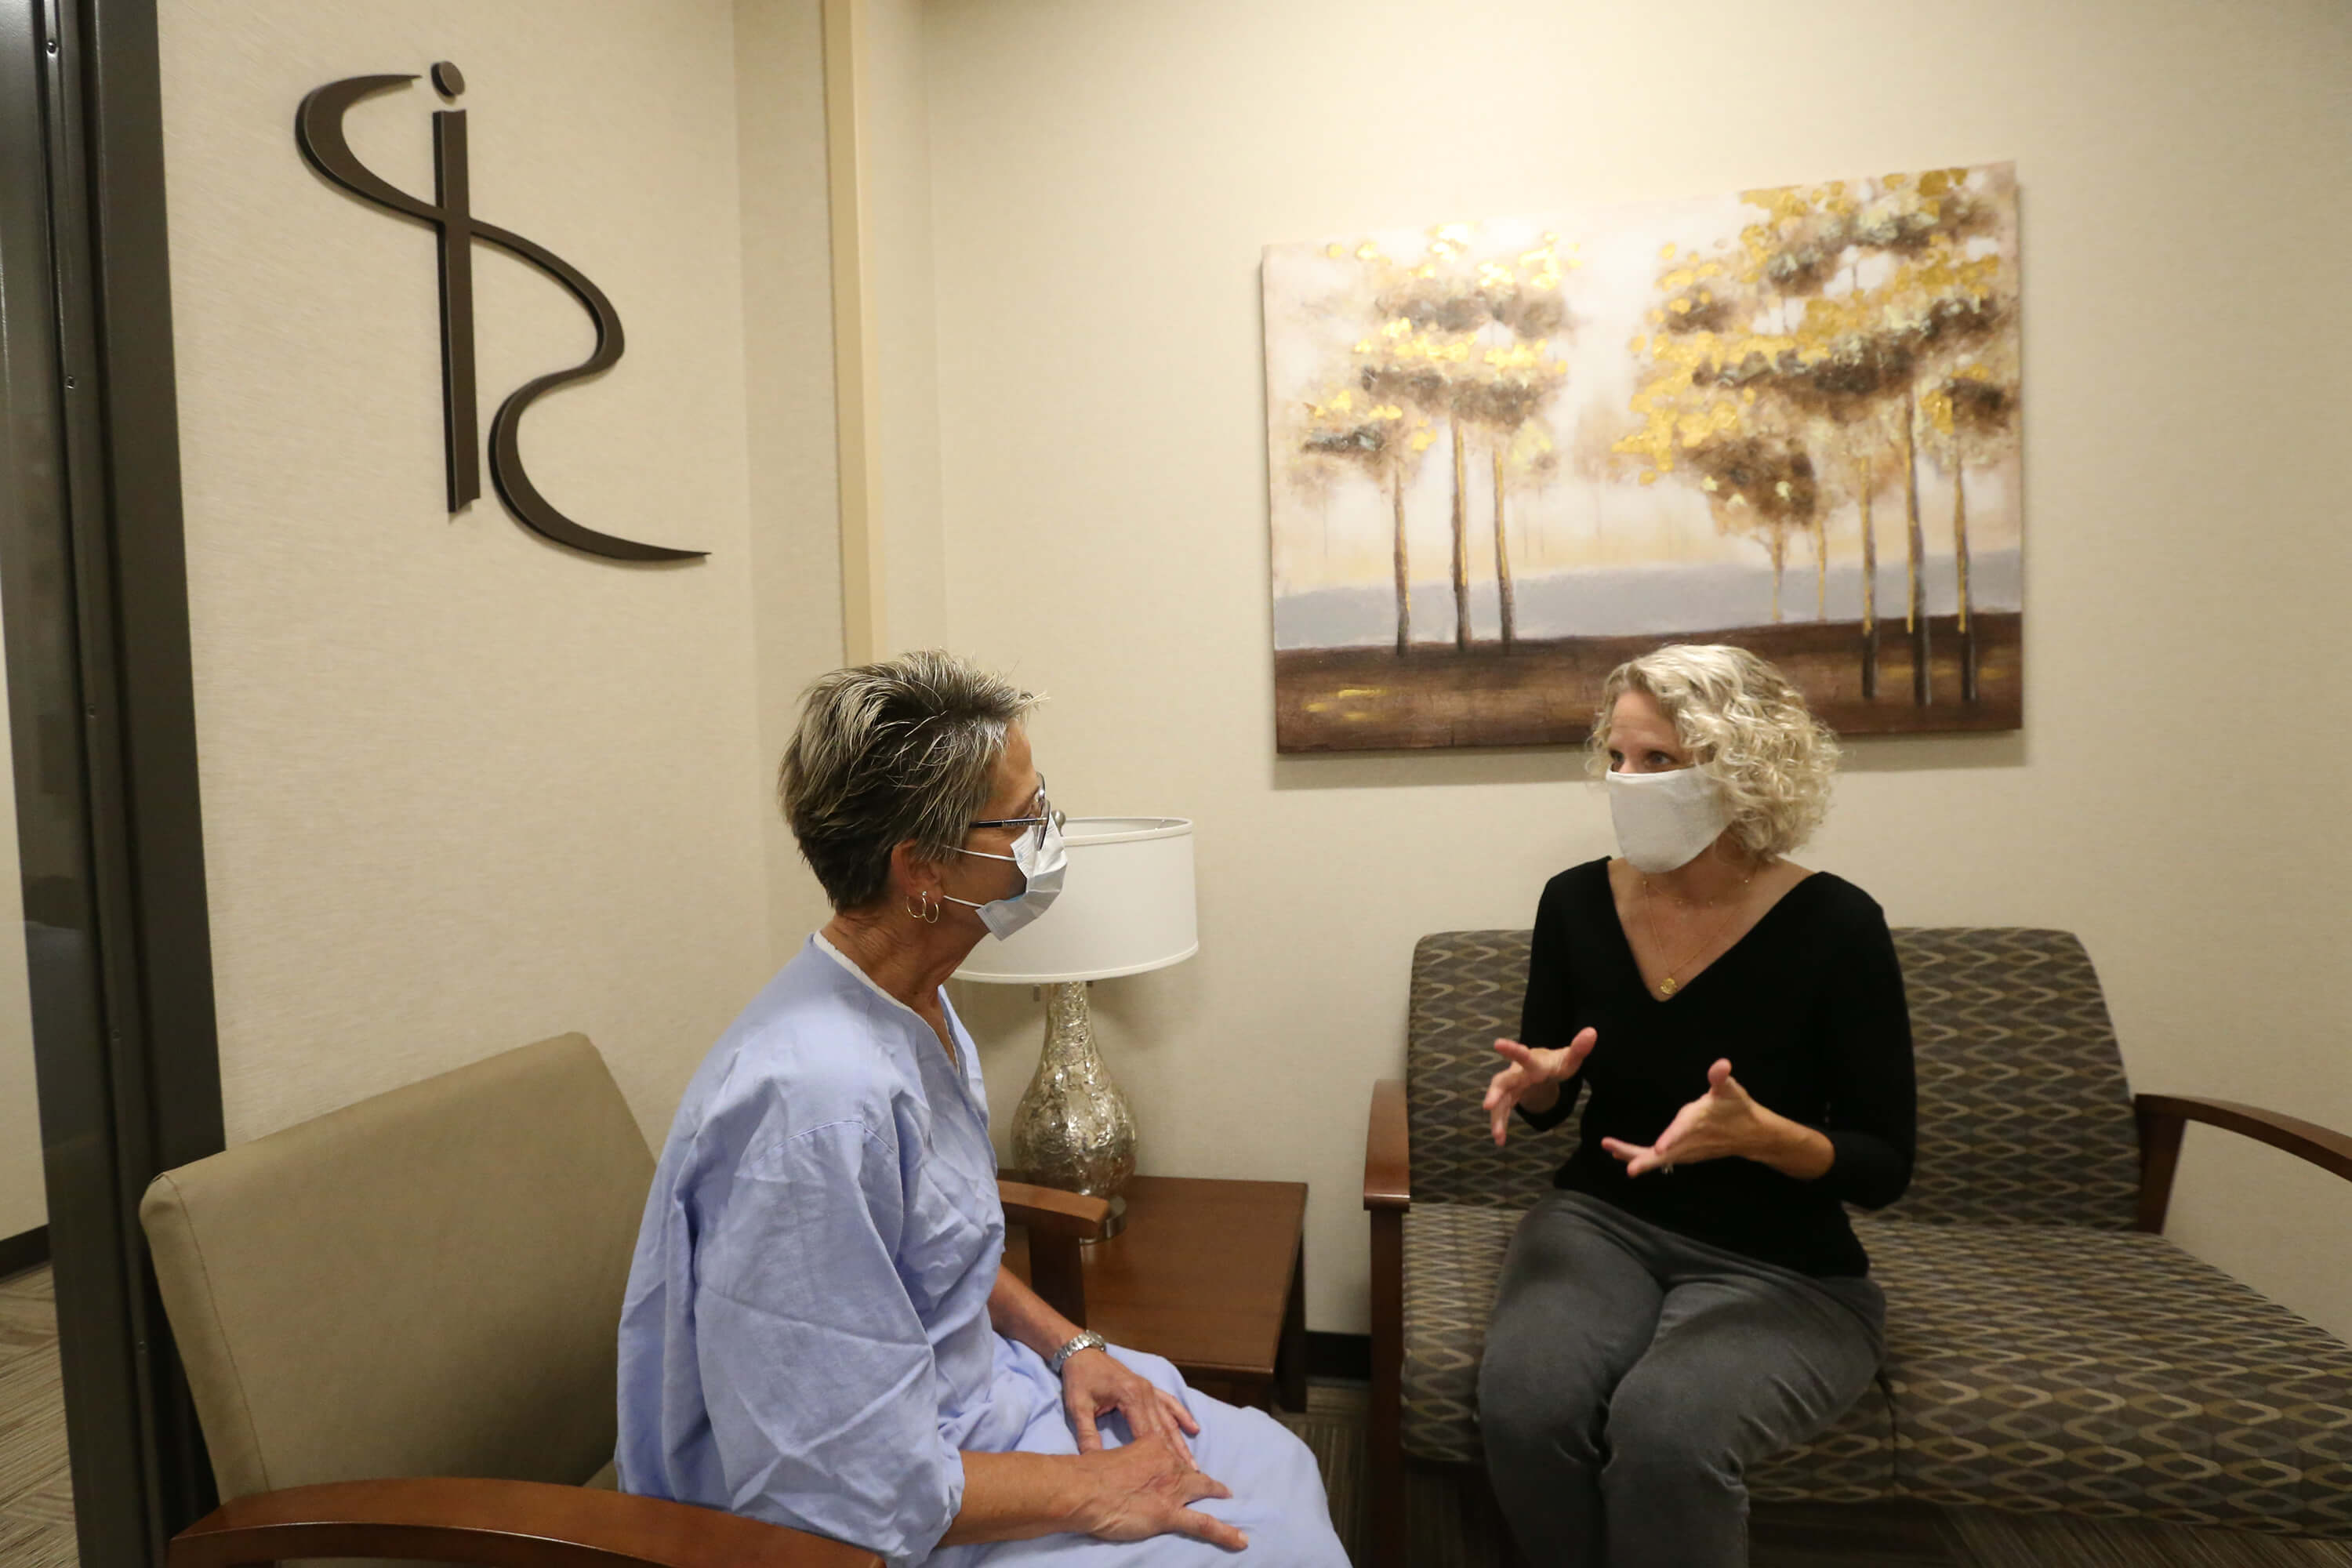 What Options Are Available for Breast Cancer Screening?